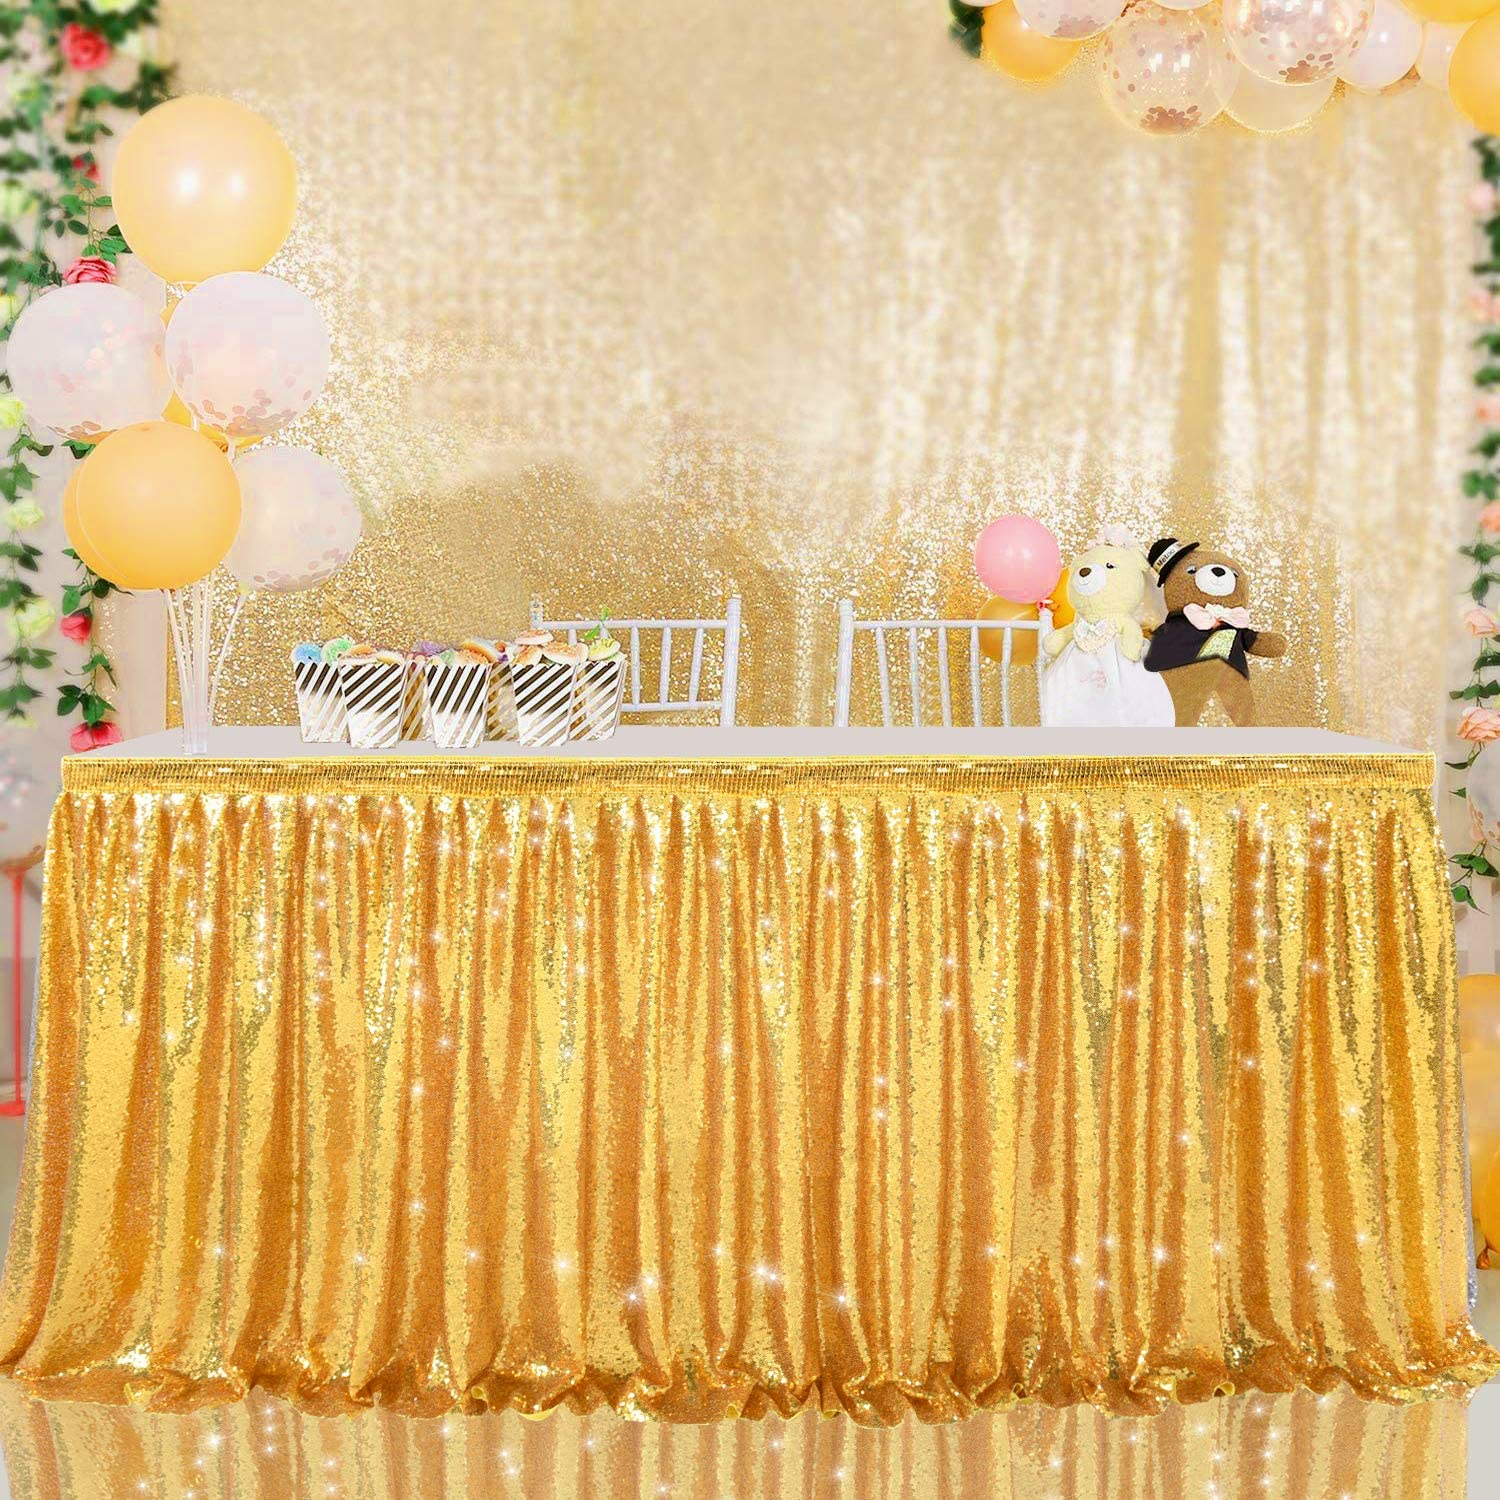 H 30in, Gold Suppromo 6ft Gold Sequin Table Skirts for Rectangle Tables Sequin Tablecloth for Wedding Birthday Party Baby Shower Cake Dessert Banquet Event Table Cloth Decorations L6 ft